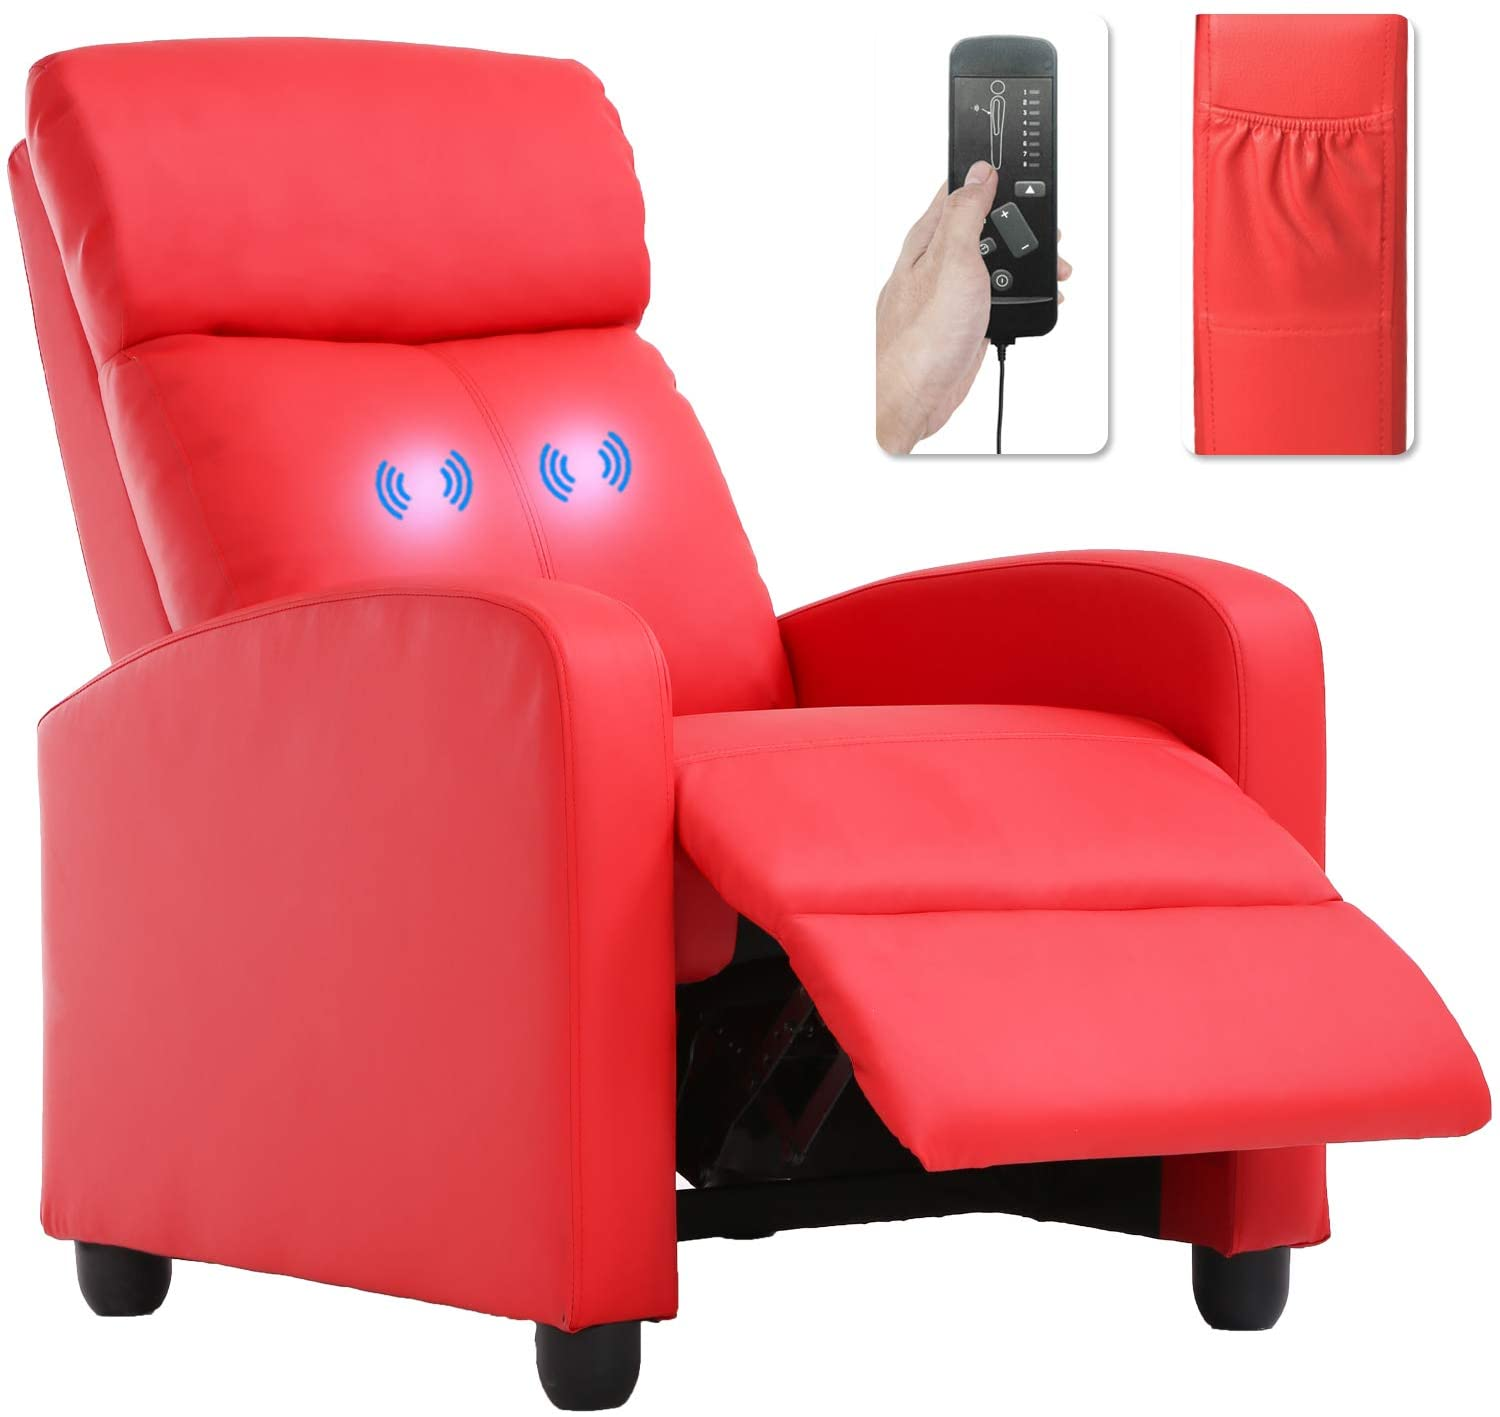 Recliner Chair for Living Room Massage Recliner Sofa Reading Chair Winback Single Sofa Home Theater Seating Modern Reclining Chair Easy Lounge with PU Leather Padded Seat Backrest (Red)